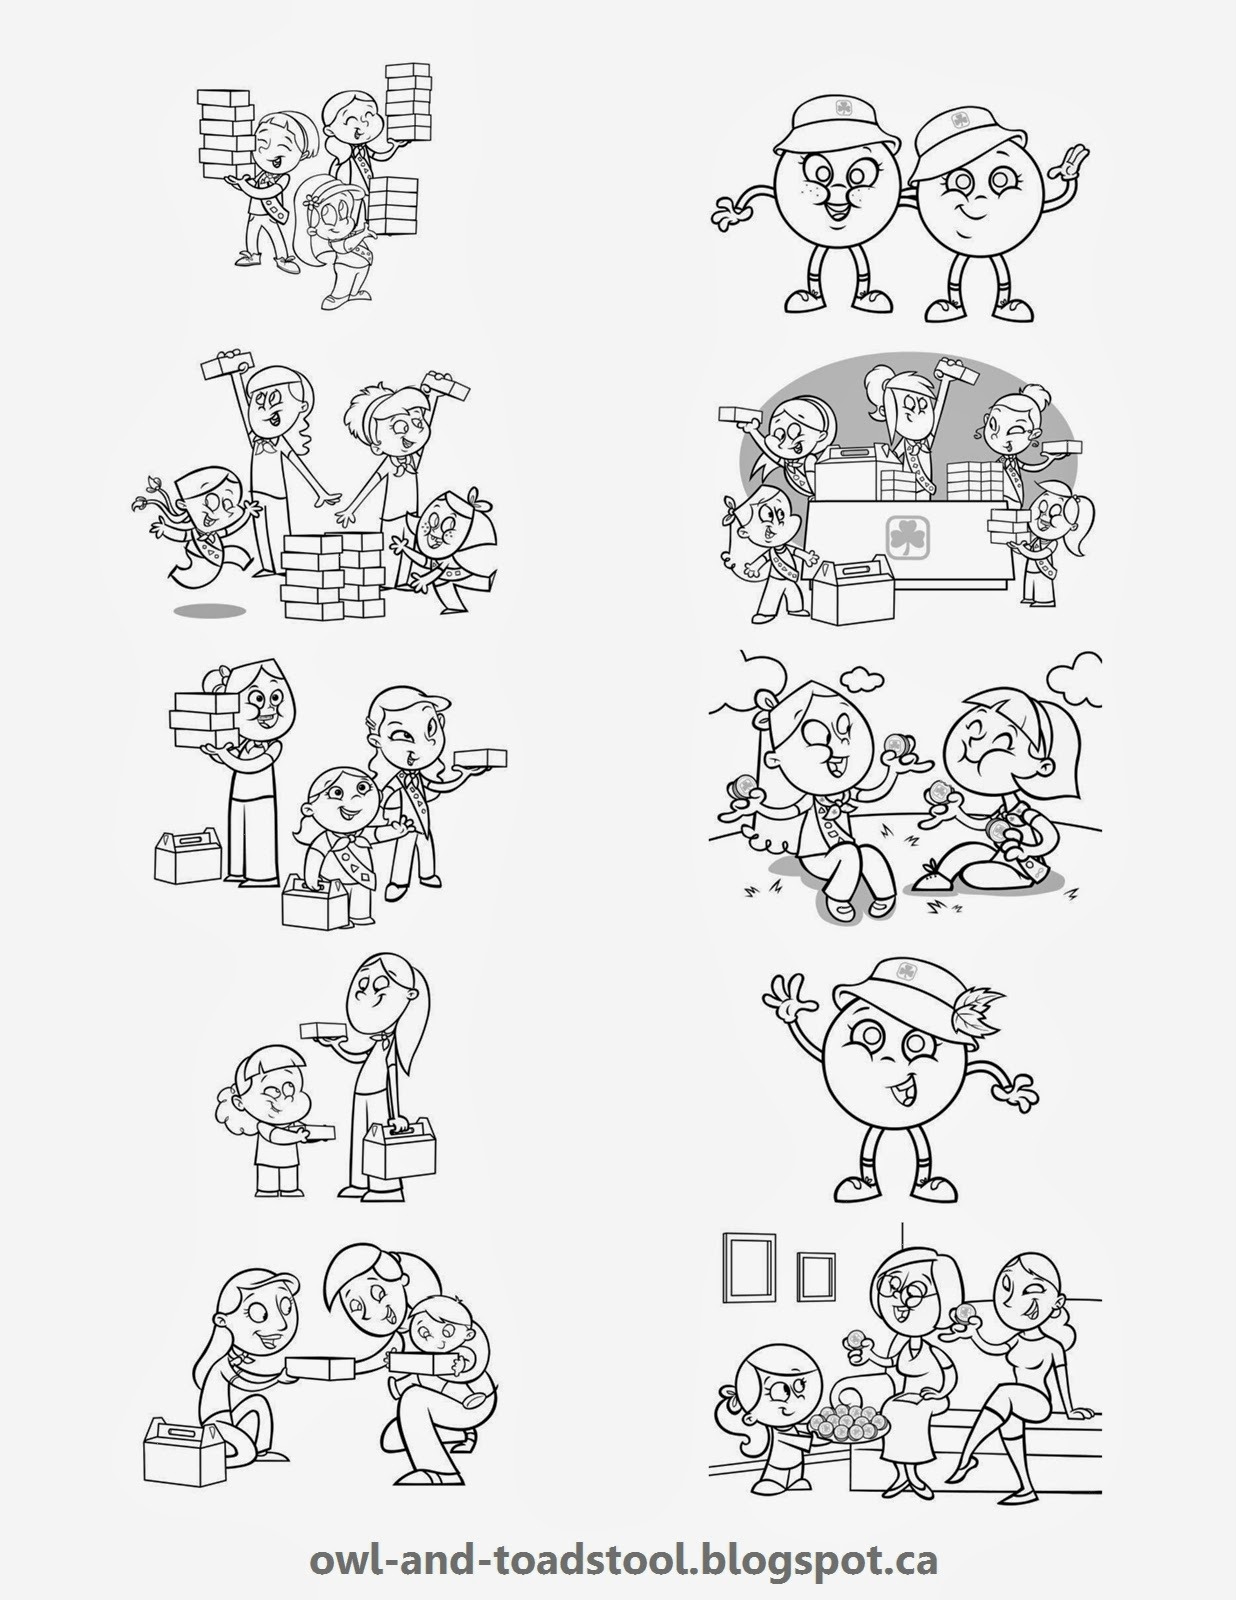 girl scout coloring pages pdf   Owl & Toadstool: Cookie Song book and colouring pages